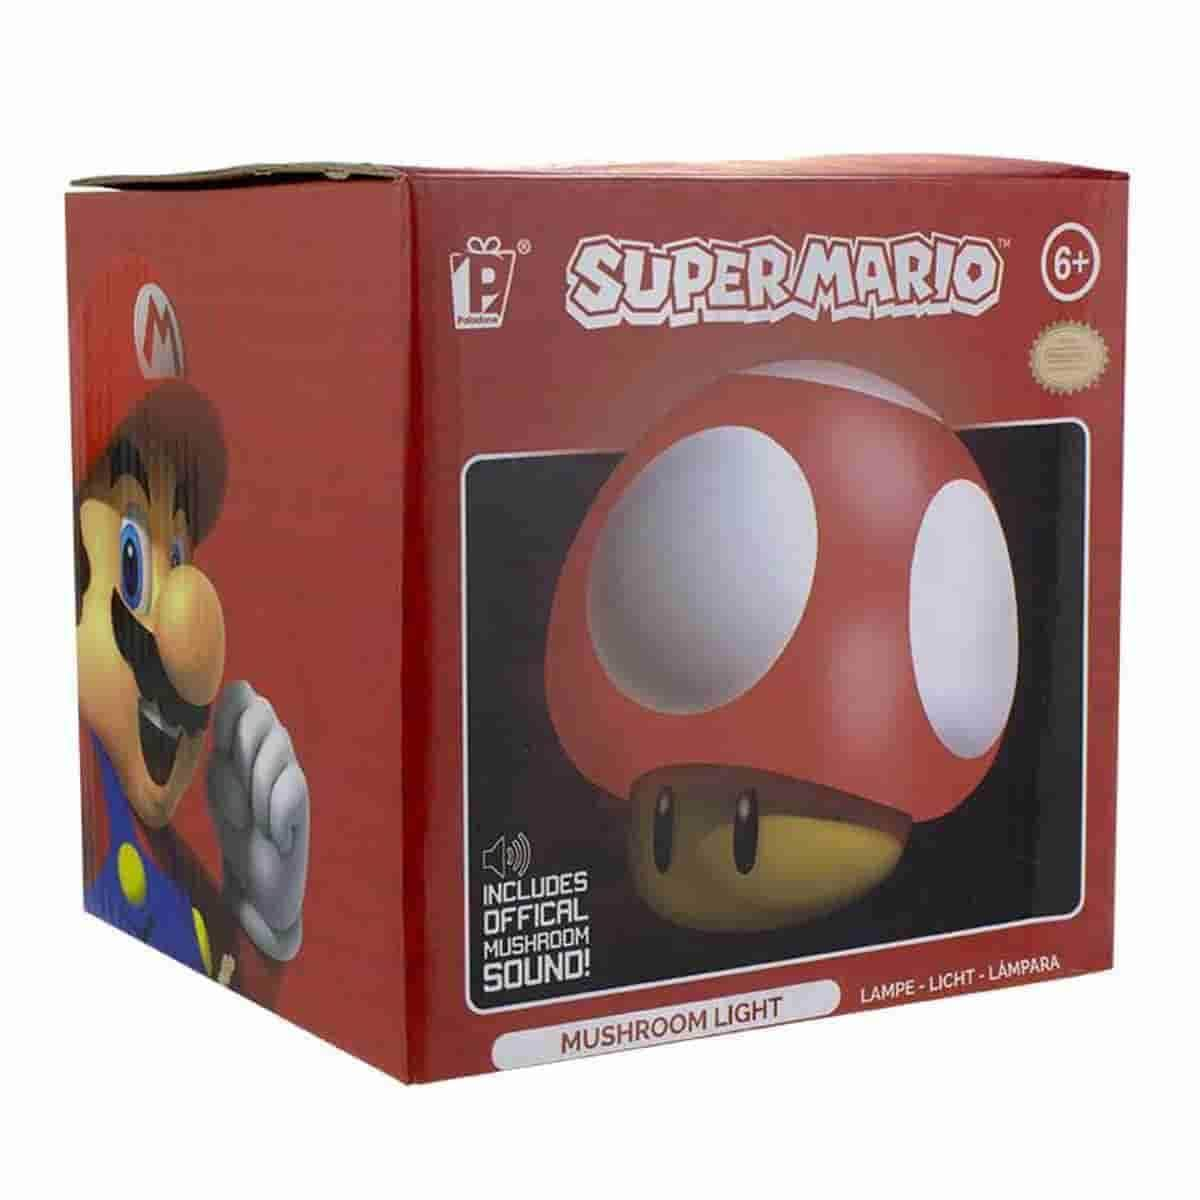 Super Mario : Mushroom Desk Light - Officially Licensed Nintendo Merchandise - IamRetro.com